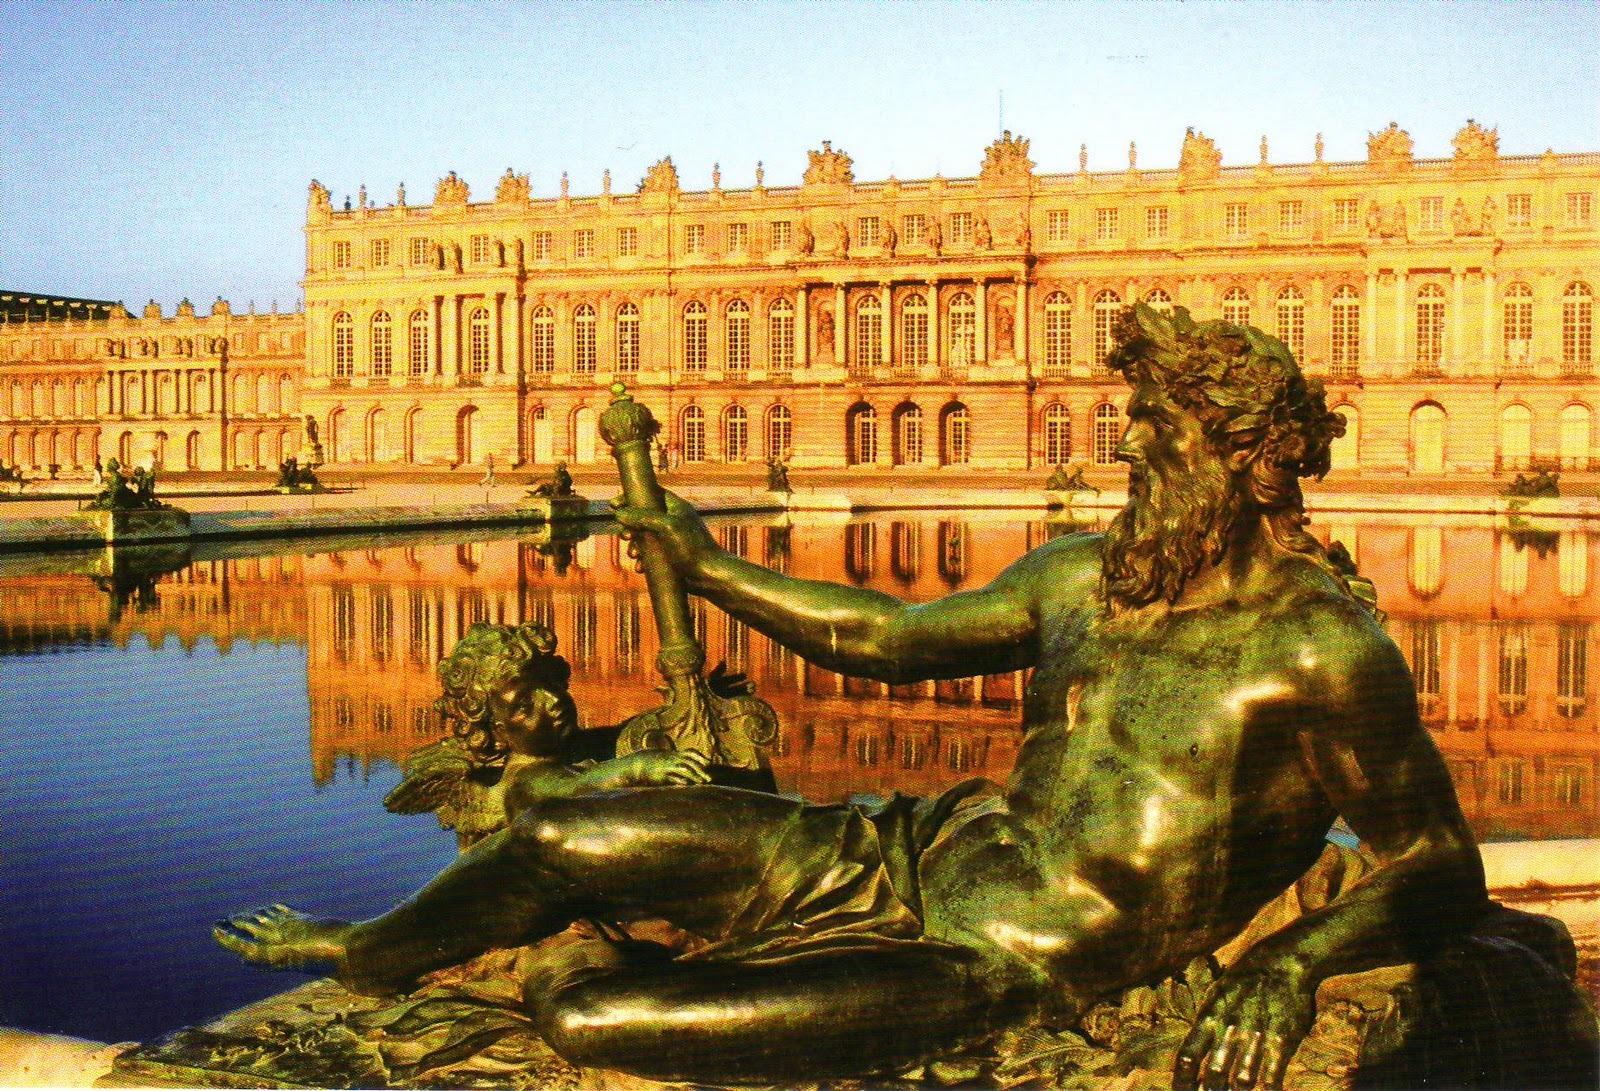 Moonlights Unesco Whs Blog France Palace And Park Of